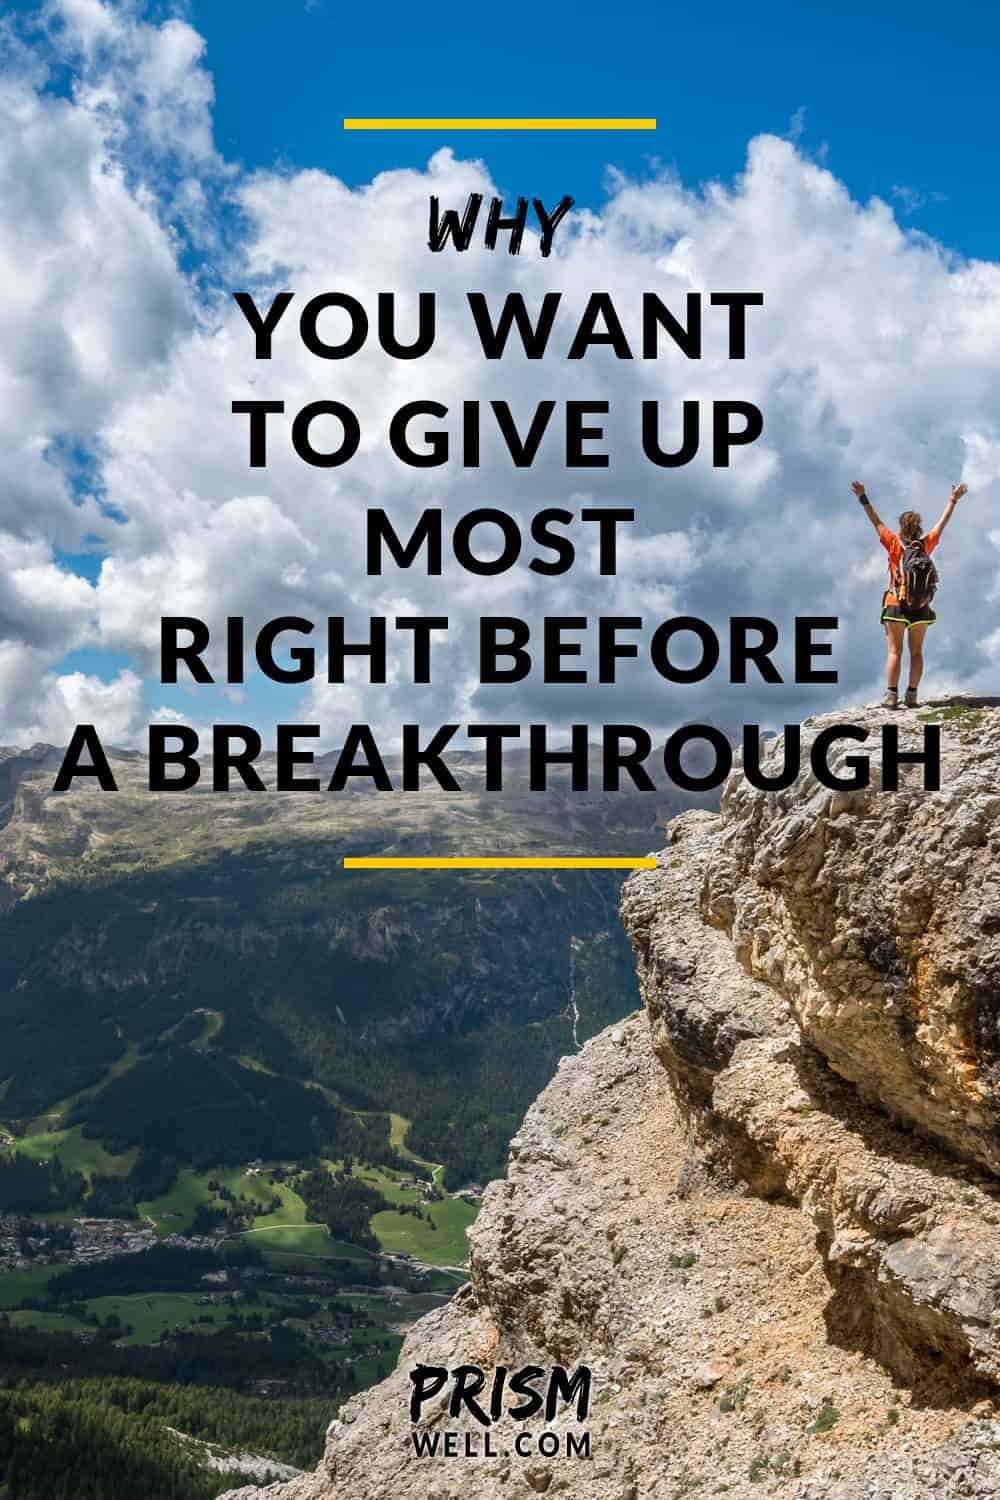 The more you feel like giving up, the closer you might be to that breakthrough. Here's why I look at discouragement as a sign that I'm getting close.